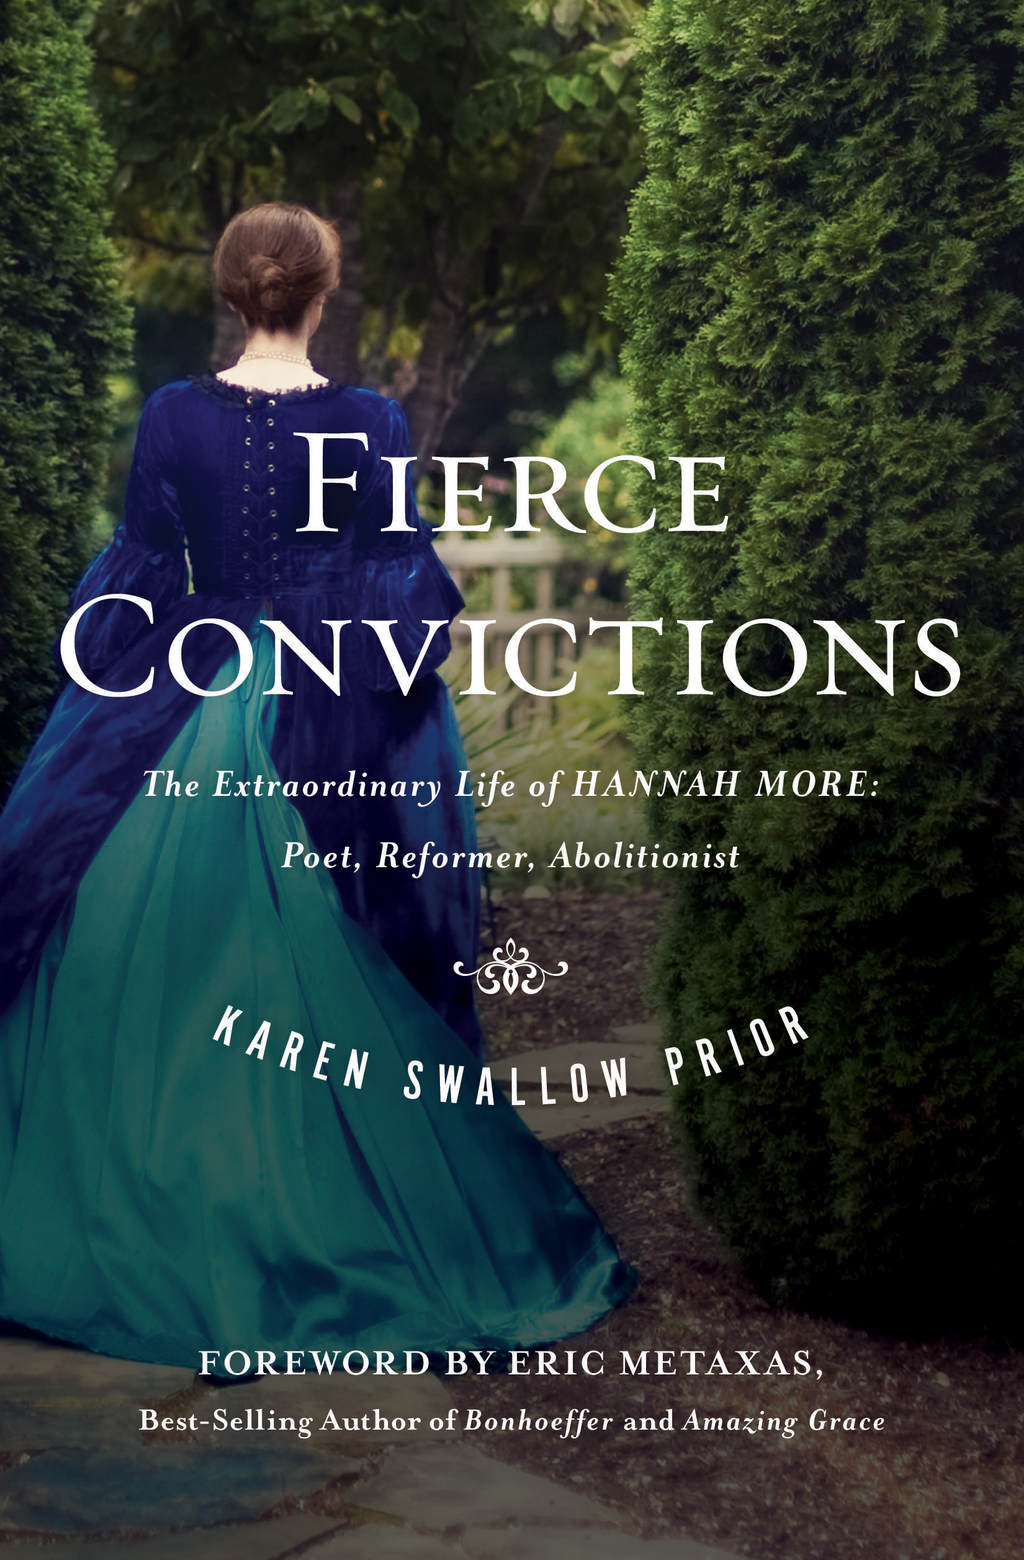 Fierce Convictions The Extraordinary Life of Hannah More-Poet,  Reformer,  Abolitionist